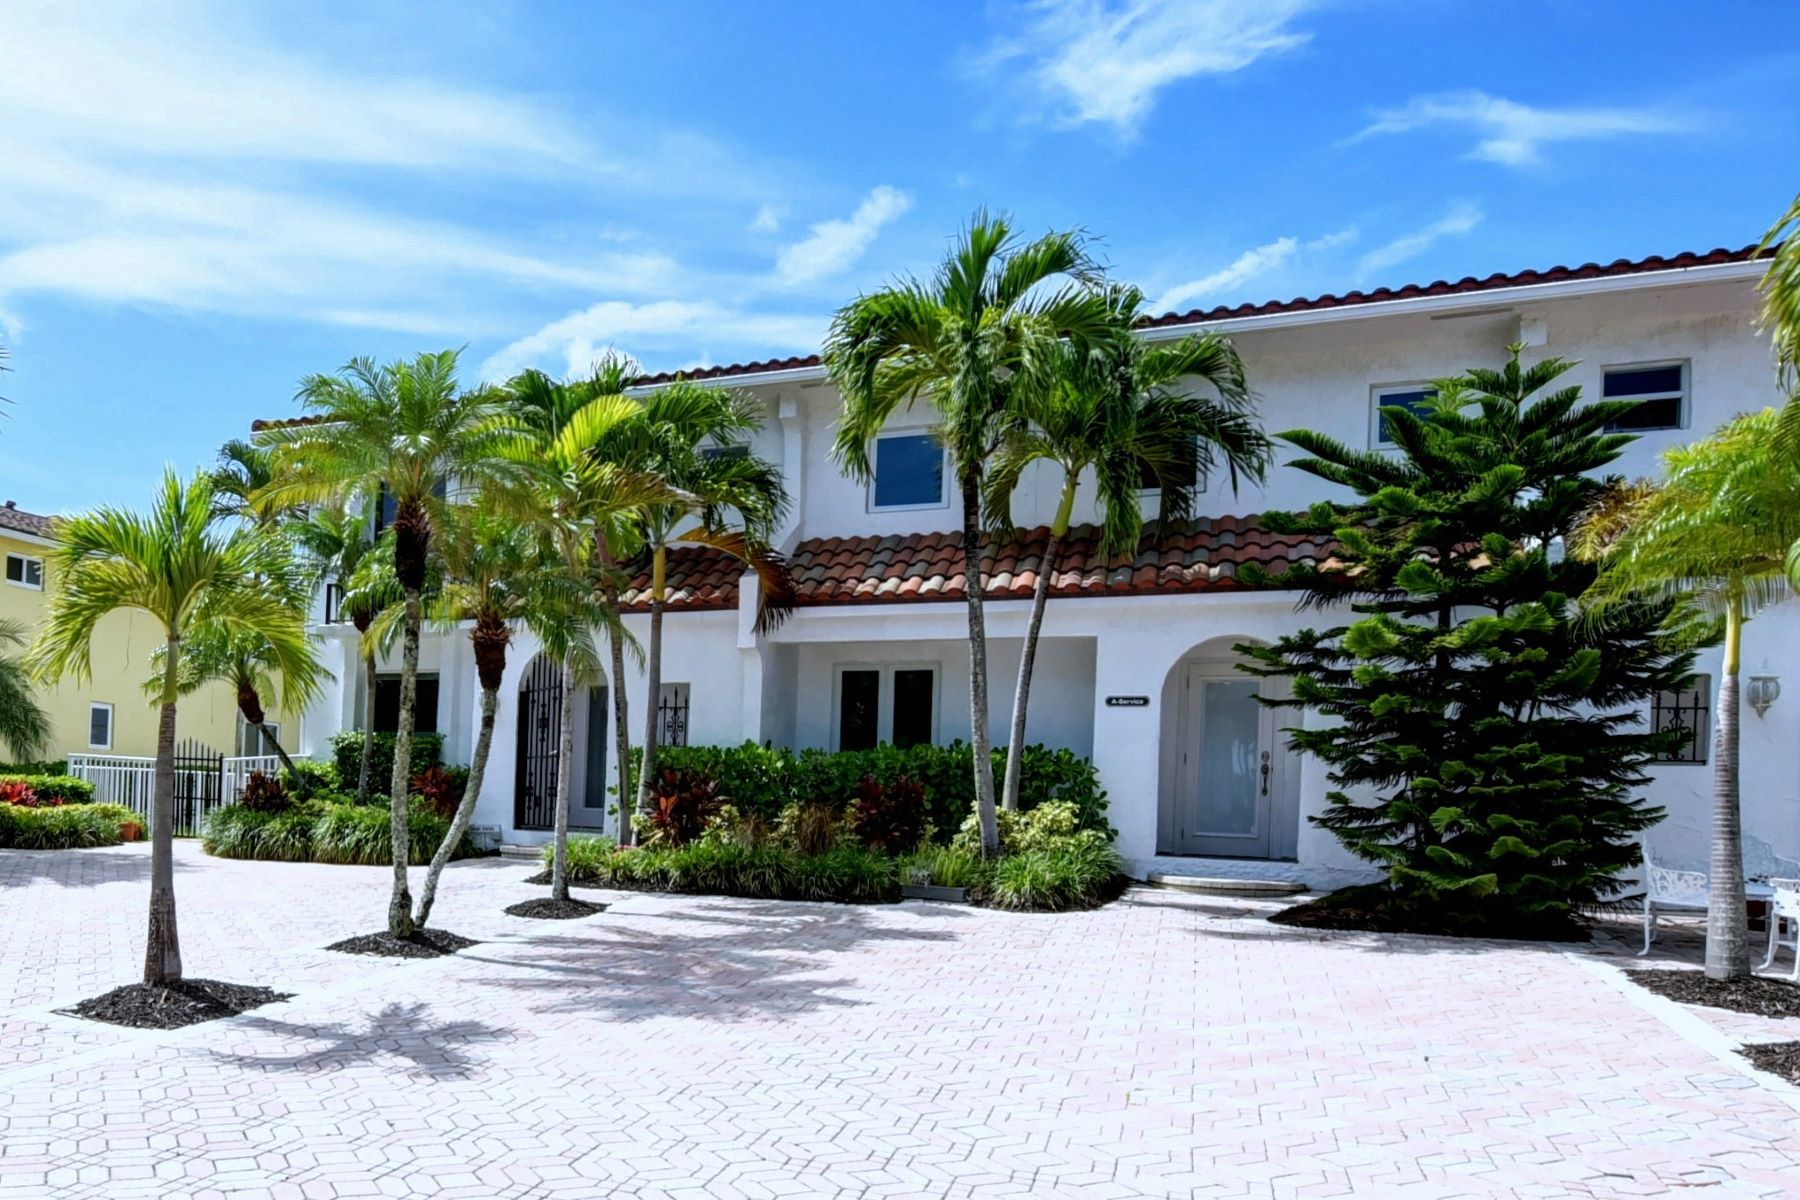 townhouses for Active at 1106 Bel Air Drive, B Highland Beach, Florida 33487 United States